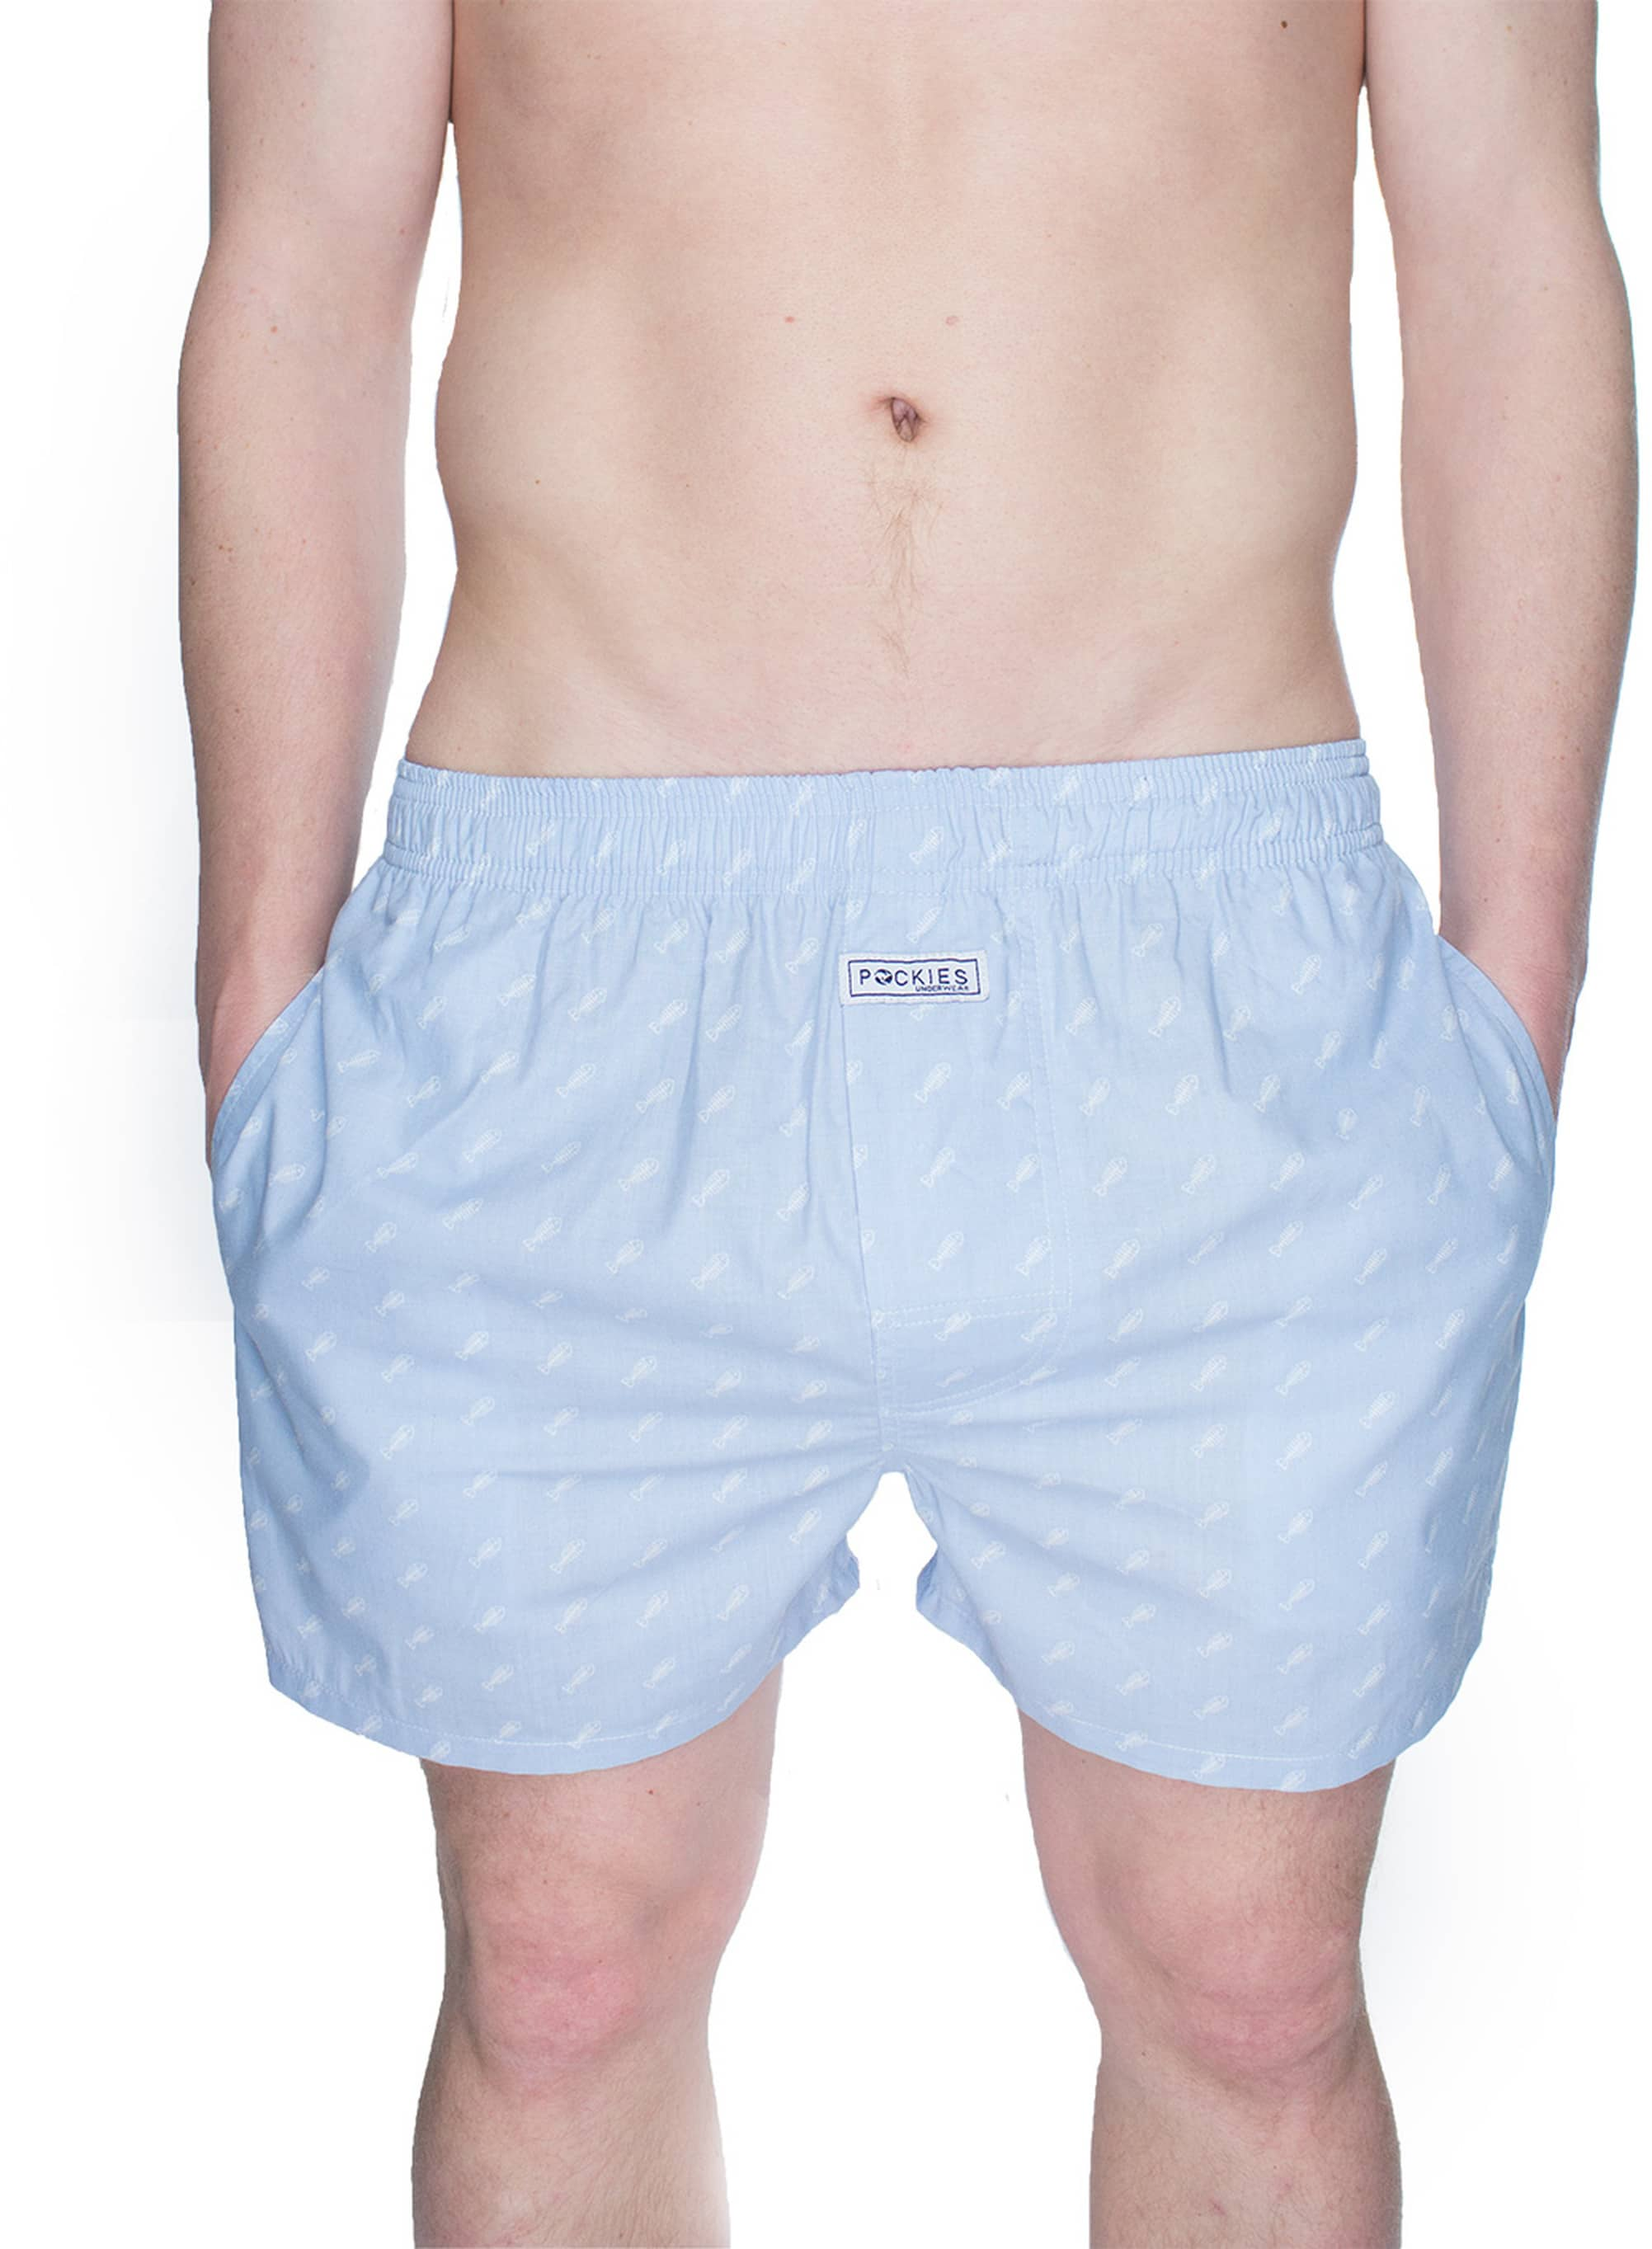 Pockies Boxershort Fishbone foto 2